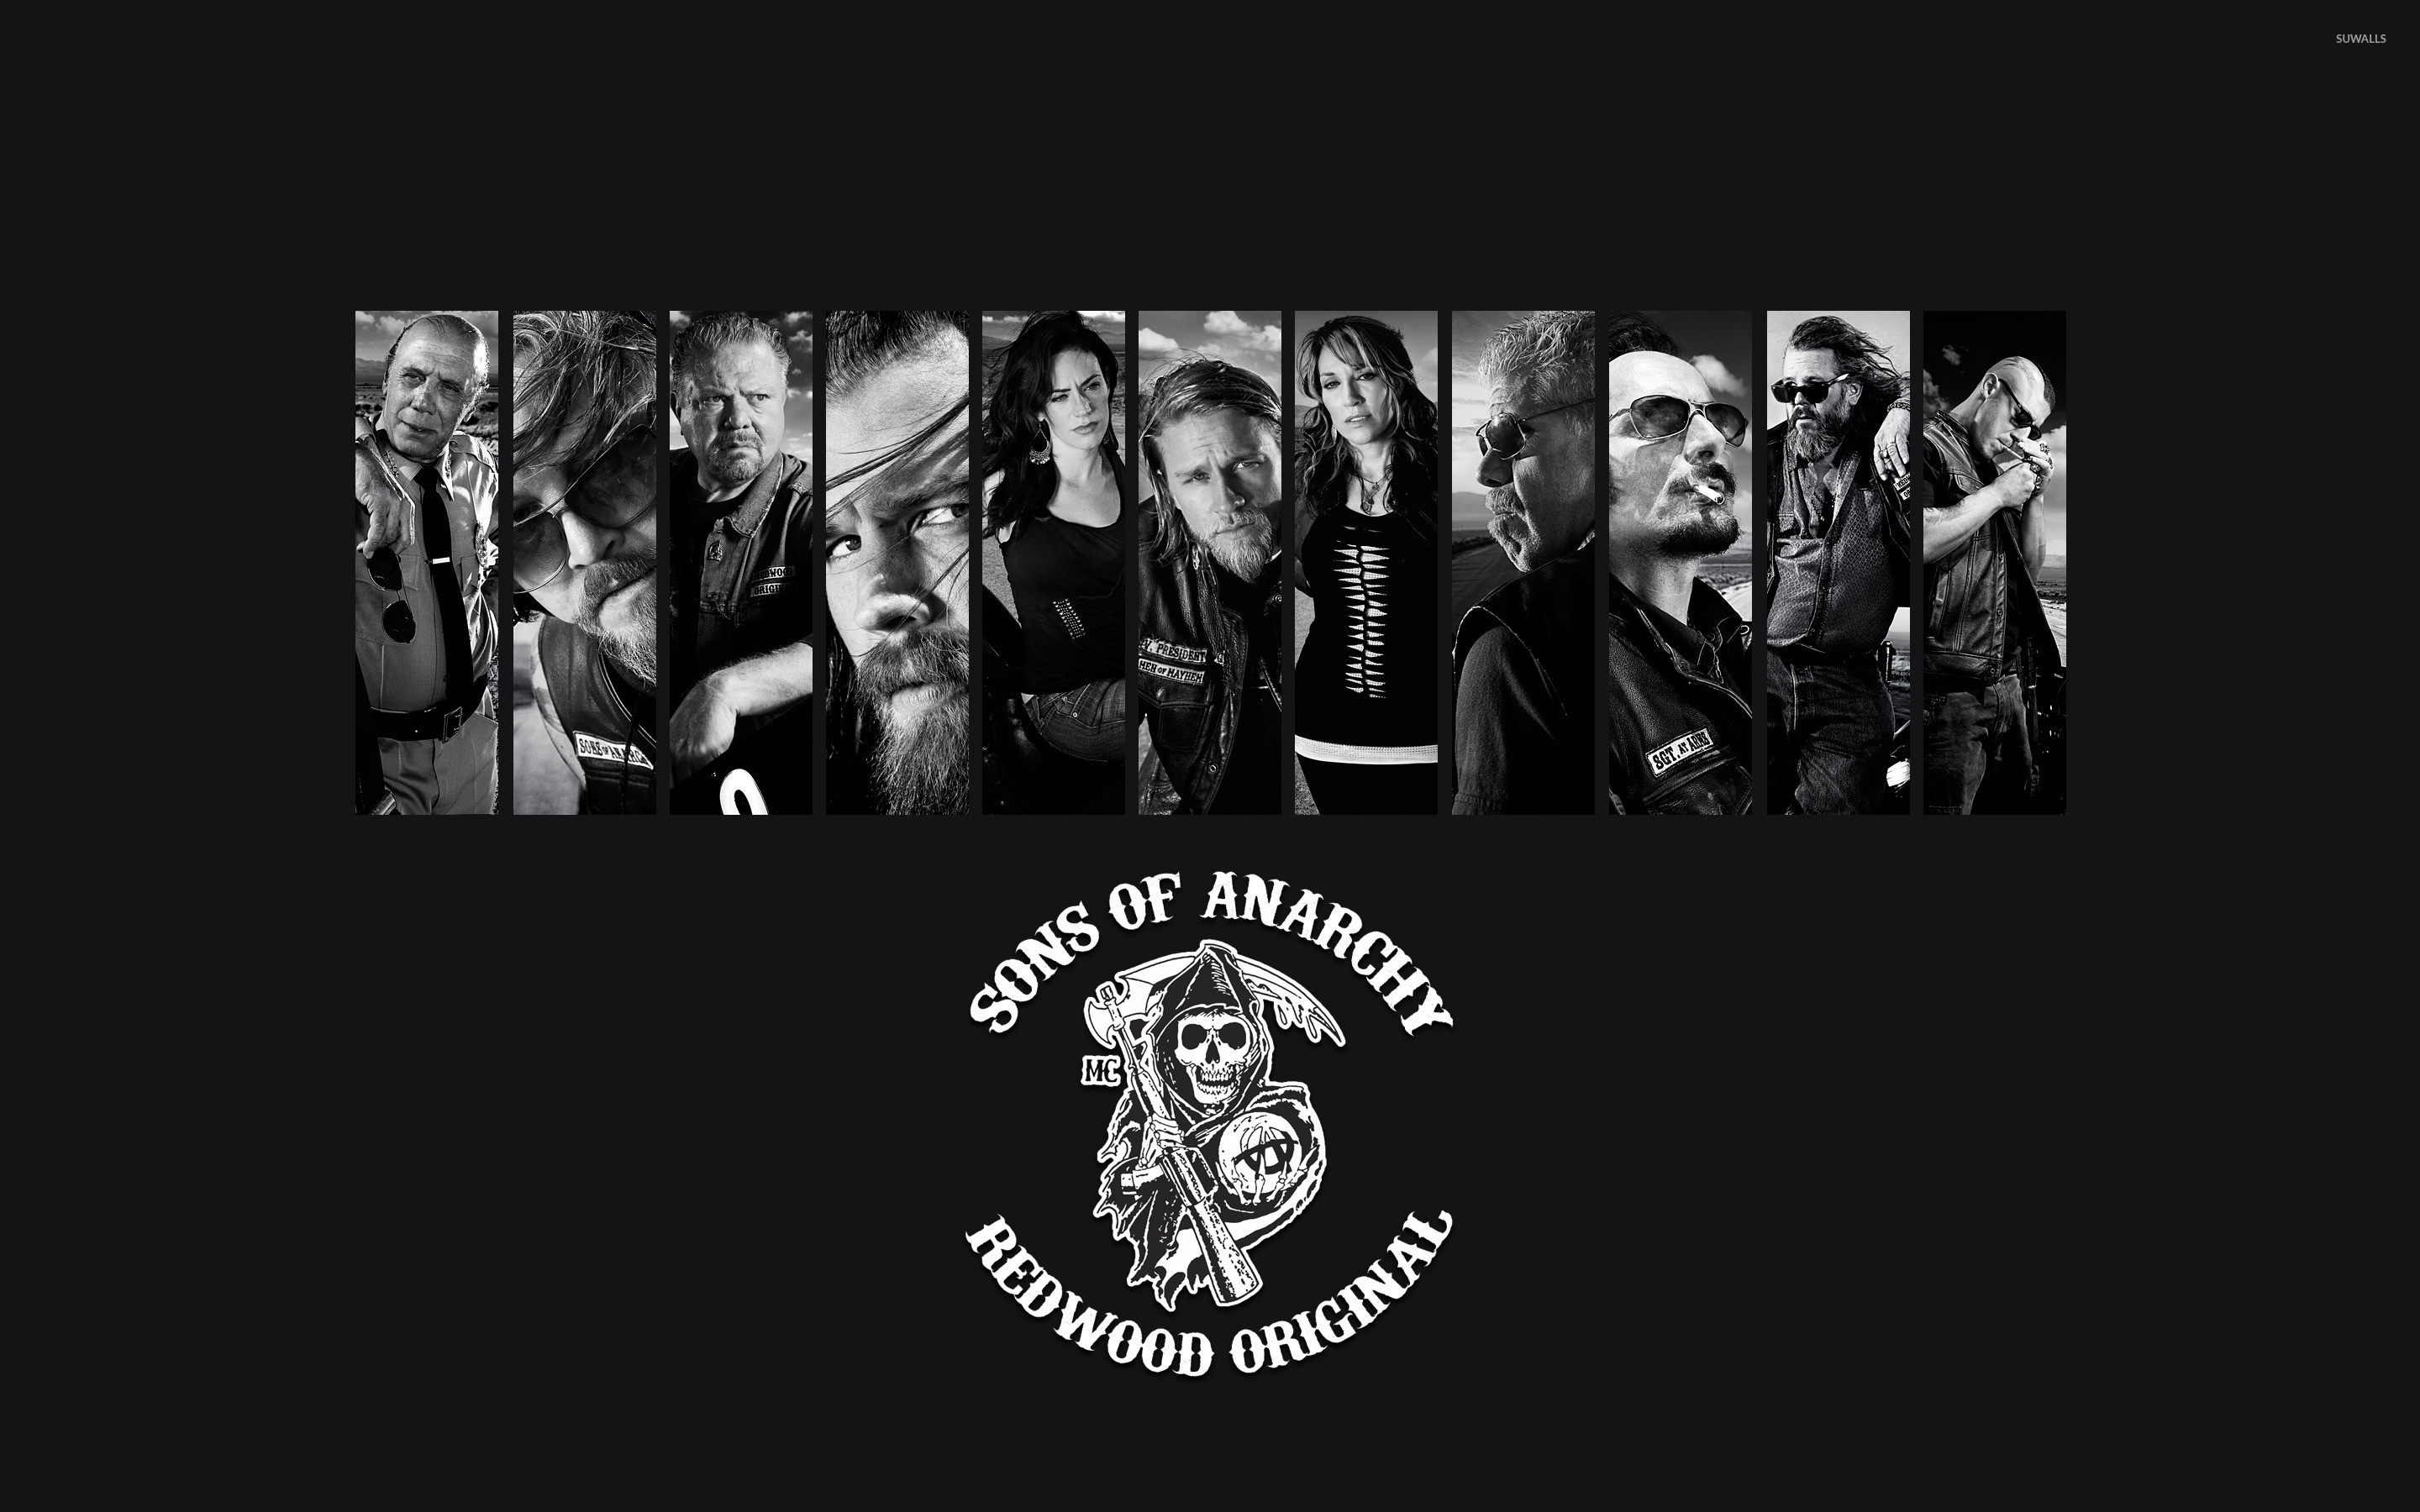 Sons of Anarchy wallpaper jpg